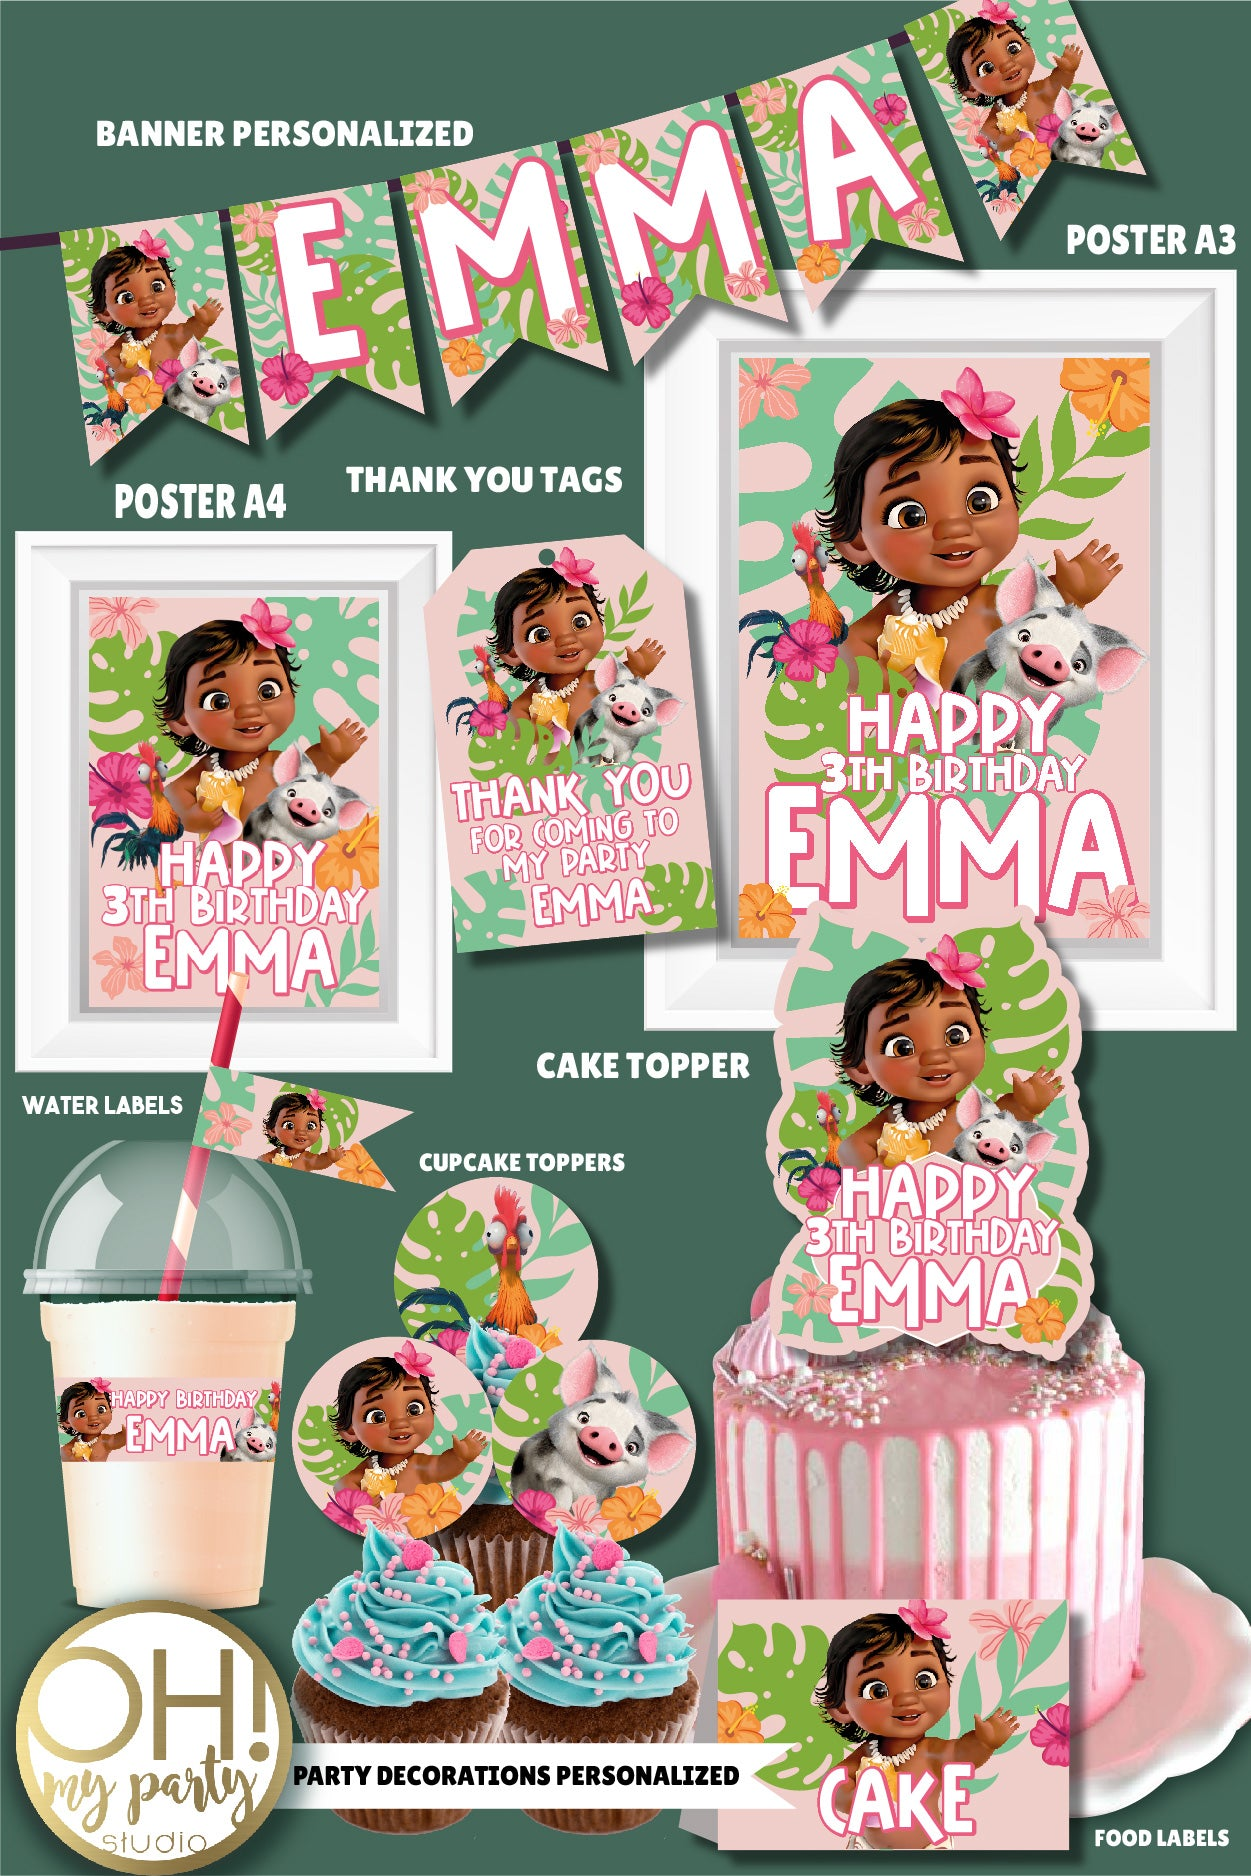 BABY MOANA BIRTHDAY PARTY DECORATIONS, BABY MOANA PARTY PRINTABLES, BABY MOANA DECORATIONS, BABY MOANA PARTY IDEAS, BABY MOANA BIRTHDAY PARTY DECORATIONS, BABY MOANA BIRTHDAY PARTY IDEAS, BABY MOANA BIRTHDAY PARTY, BABY MOANA PARTY IDEAS, BABY MOANA PARTY DECORATIONS, BABY MOANA BIRTHDAY, BABY MOANA PARTY, BABY MOANA PARTY SUPPLIES